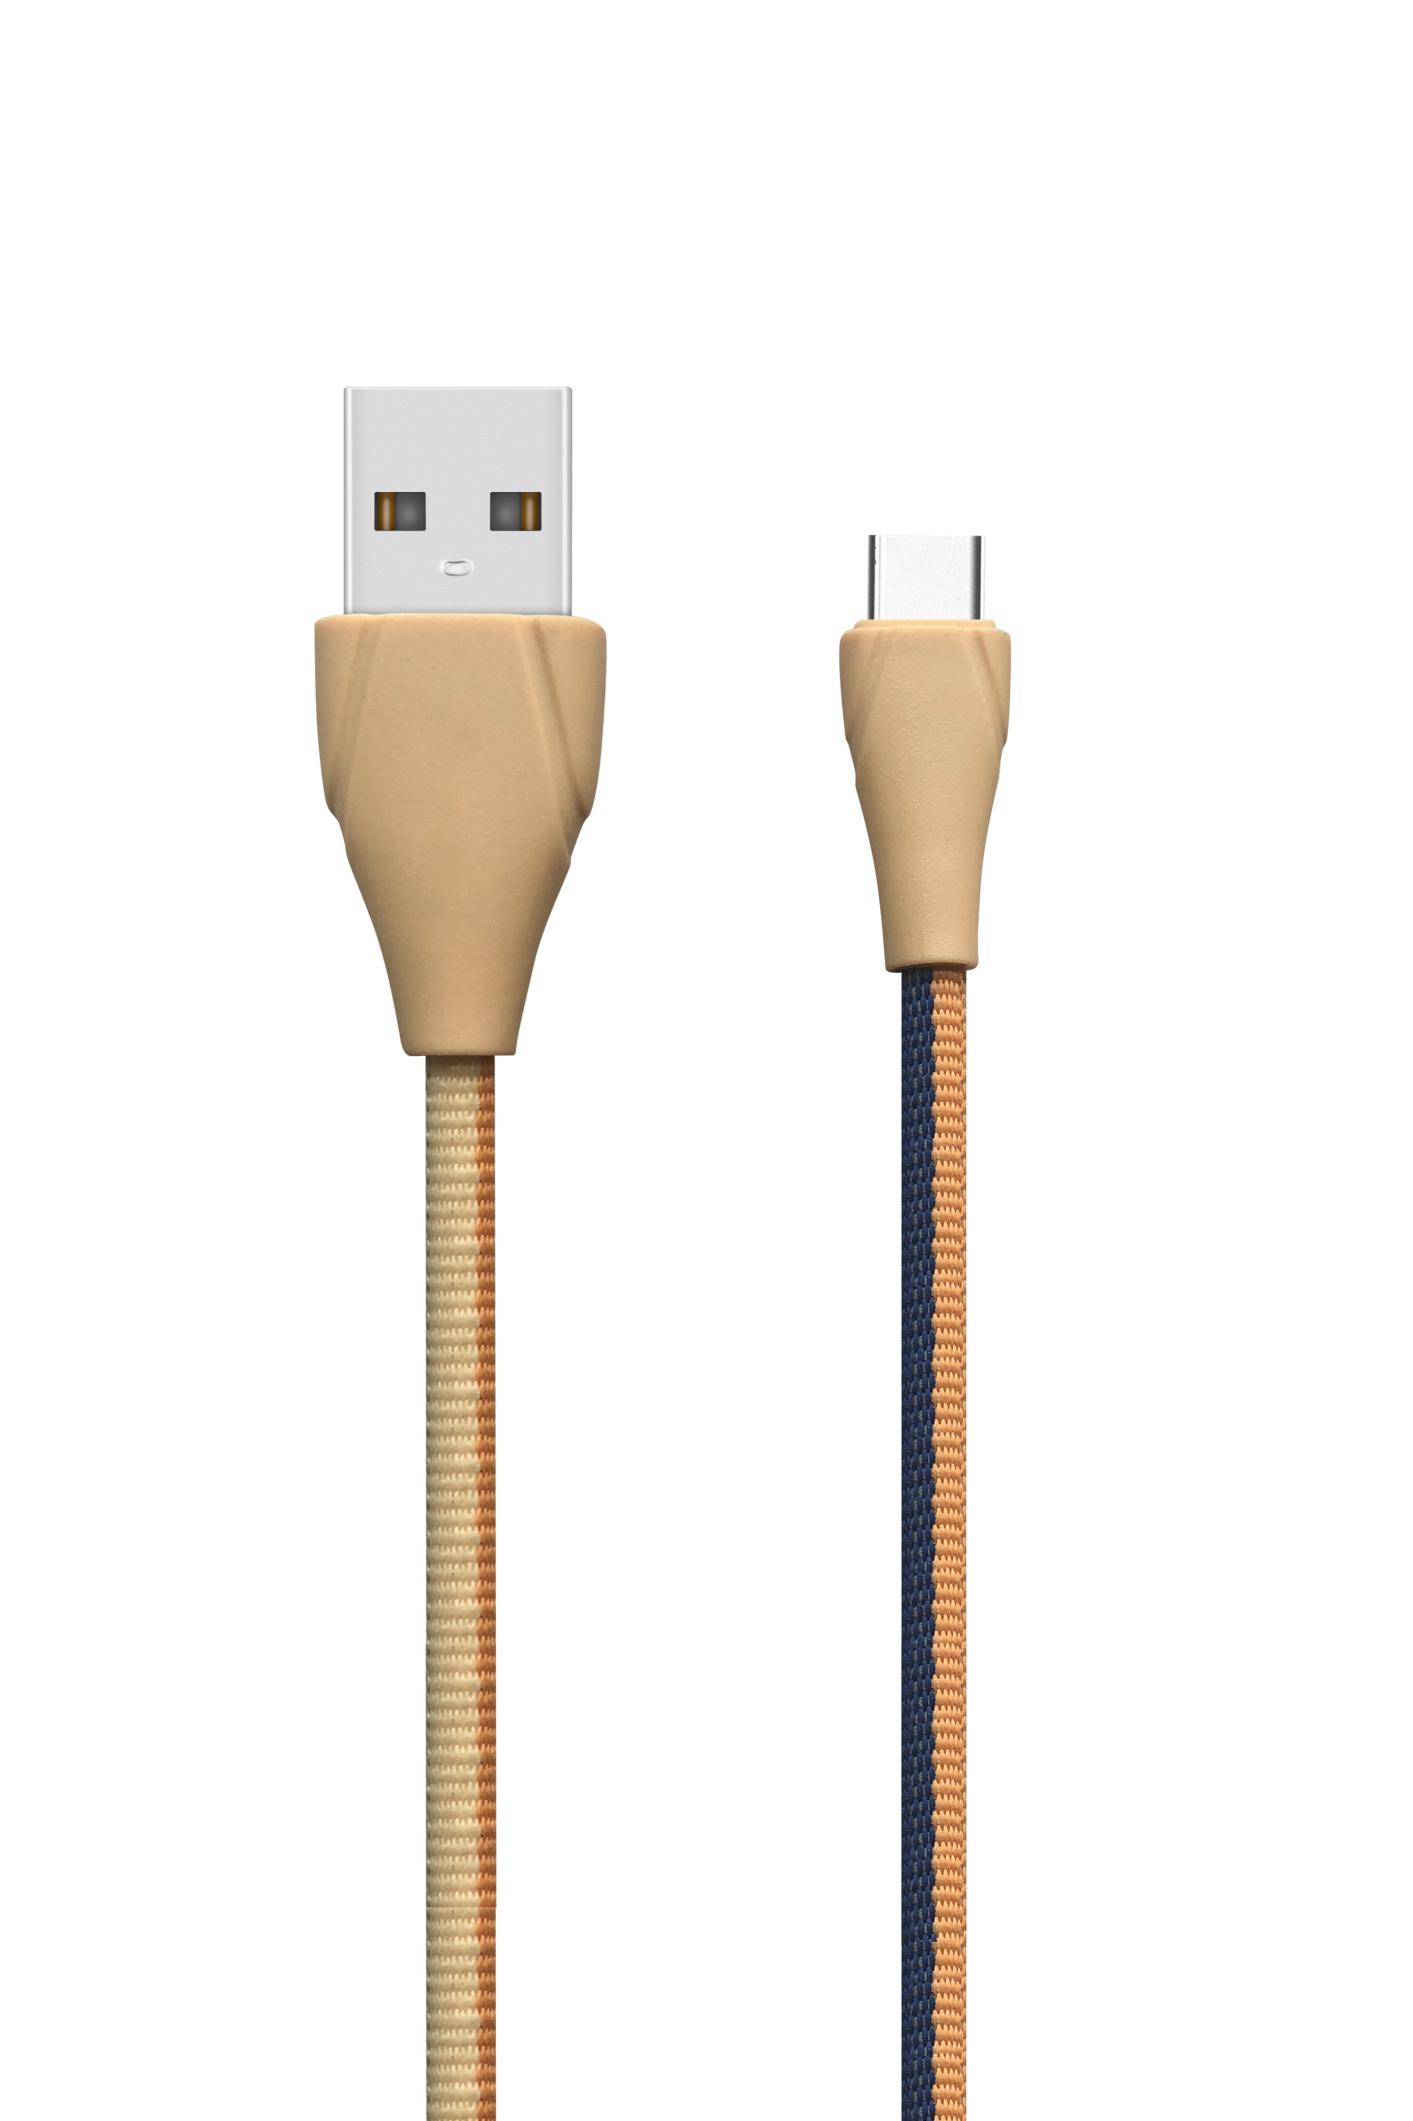 New Selling Products Data Cable the Durable Nylon Braided USB Cable